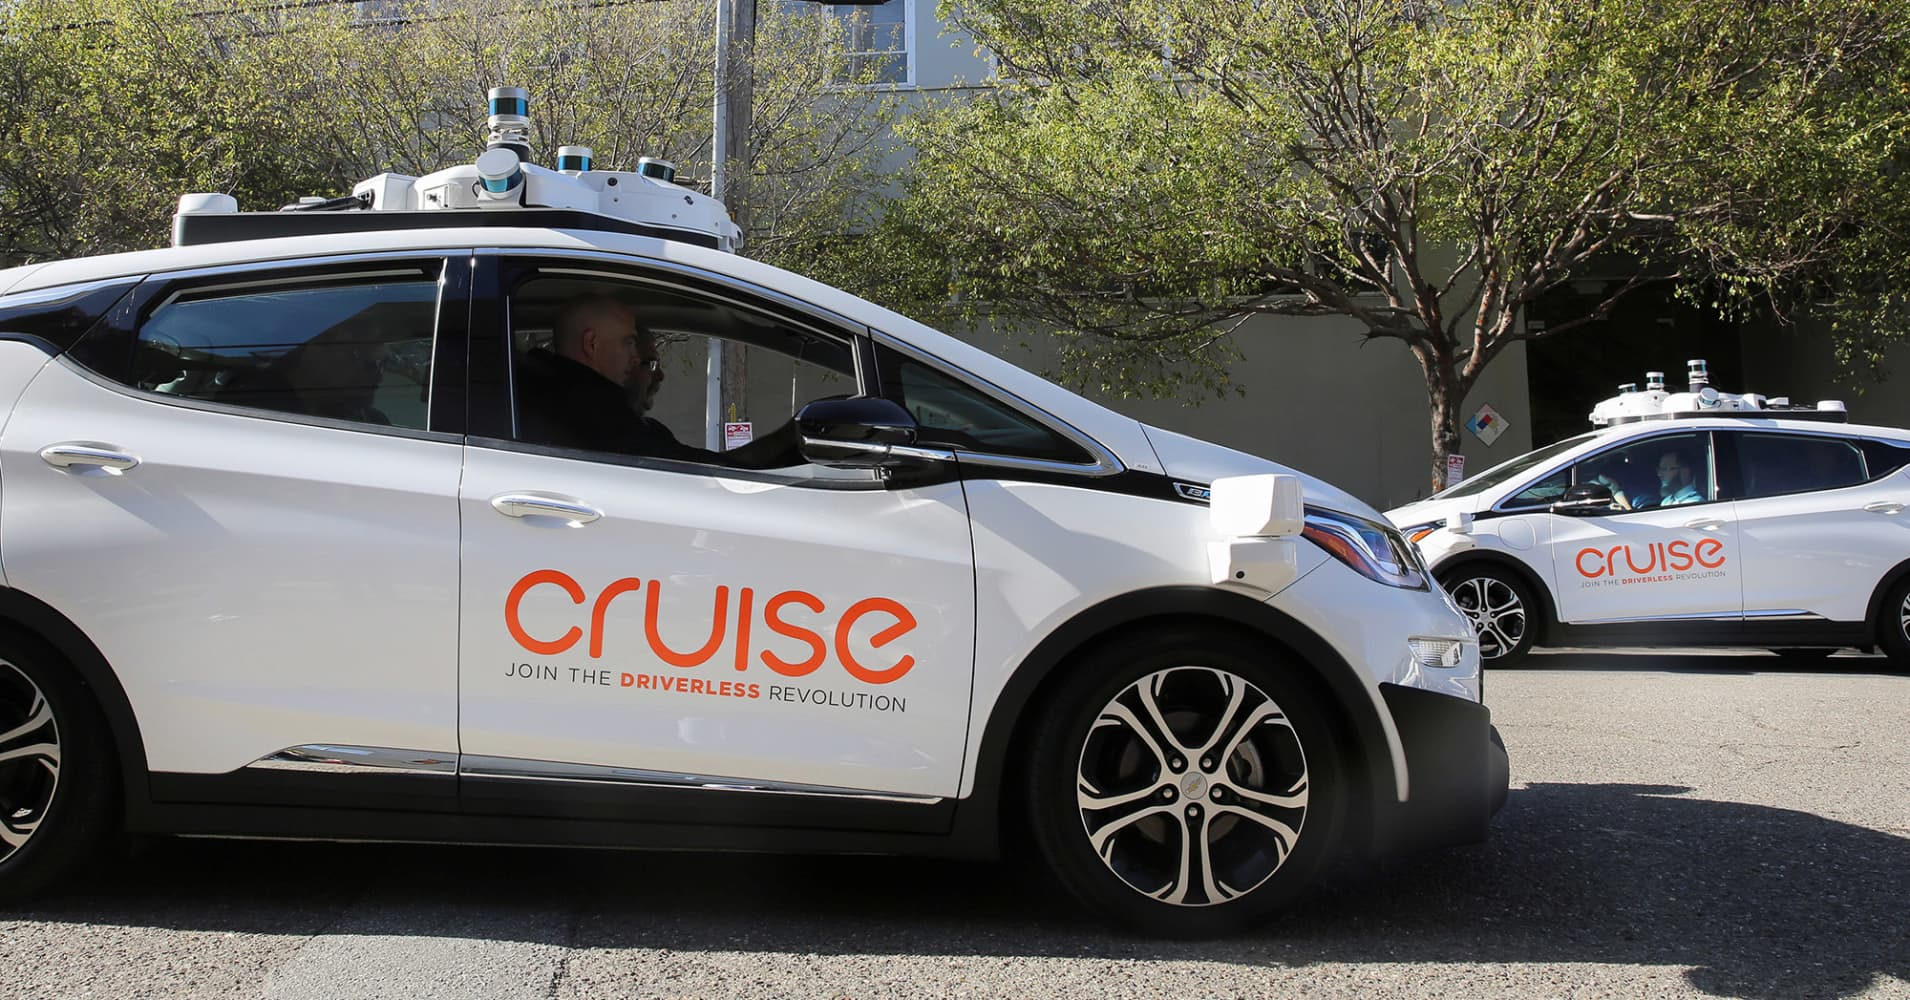 General Motors plans to take on ride-sharing services with self-driving cars by 2019